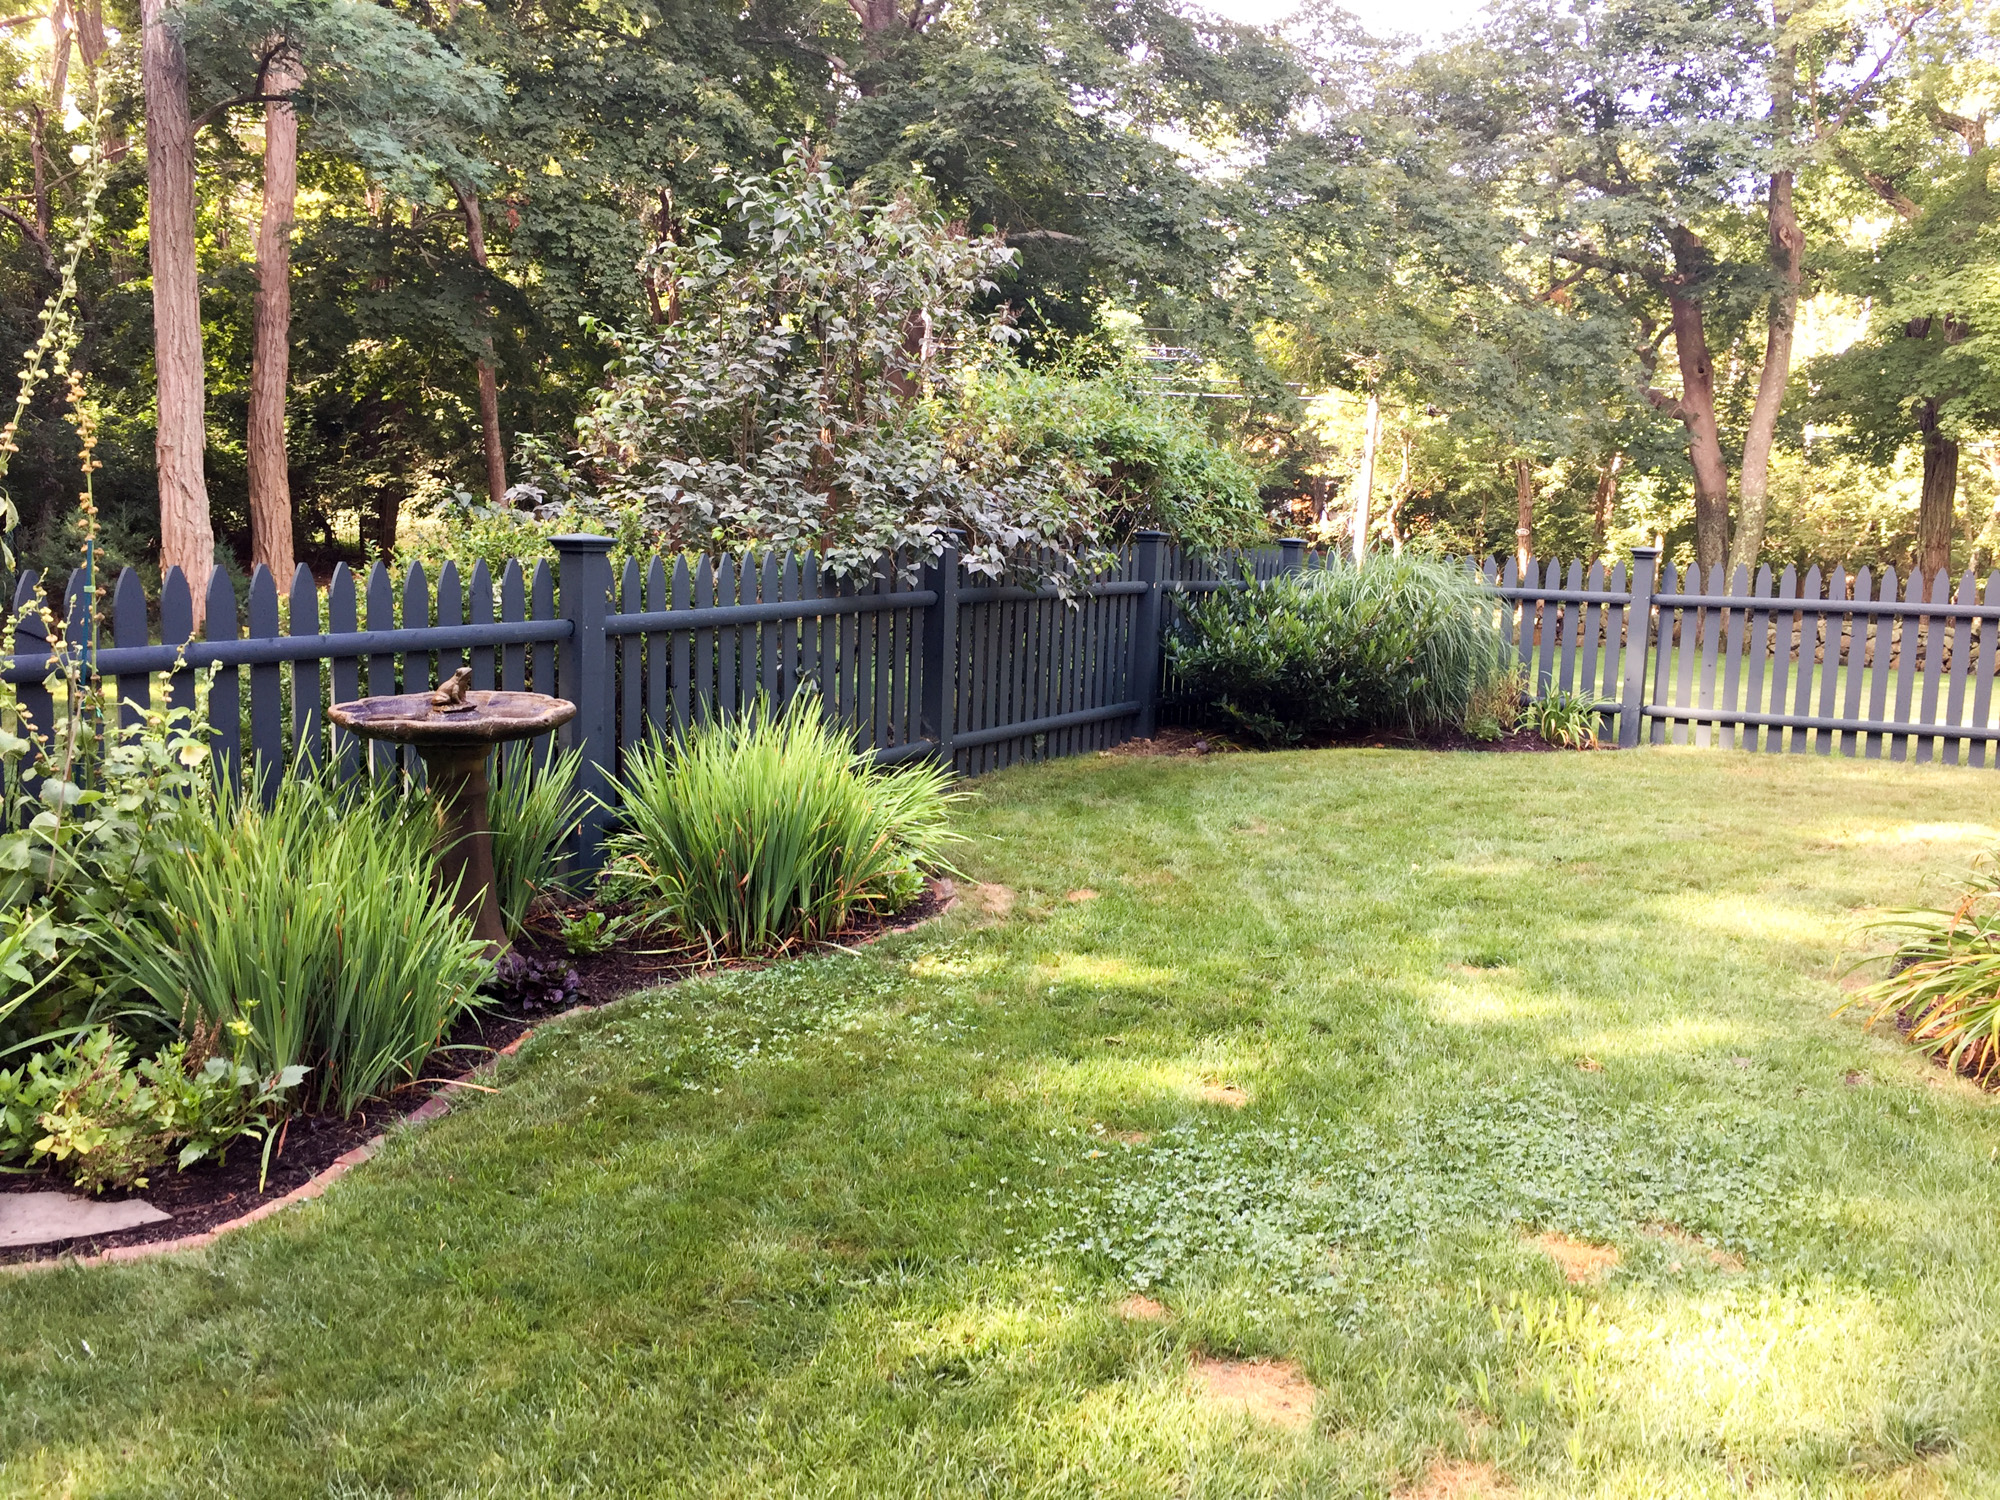 New fence after preparing for the garden fence